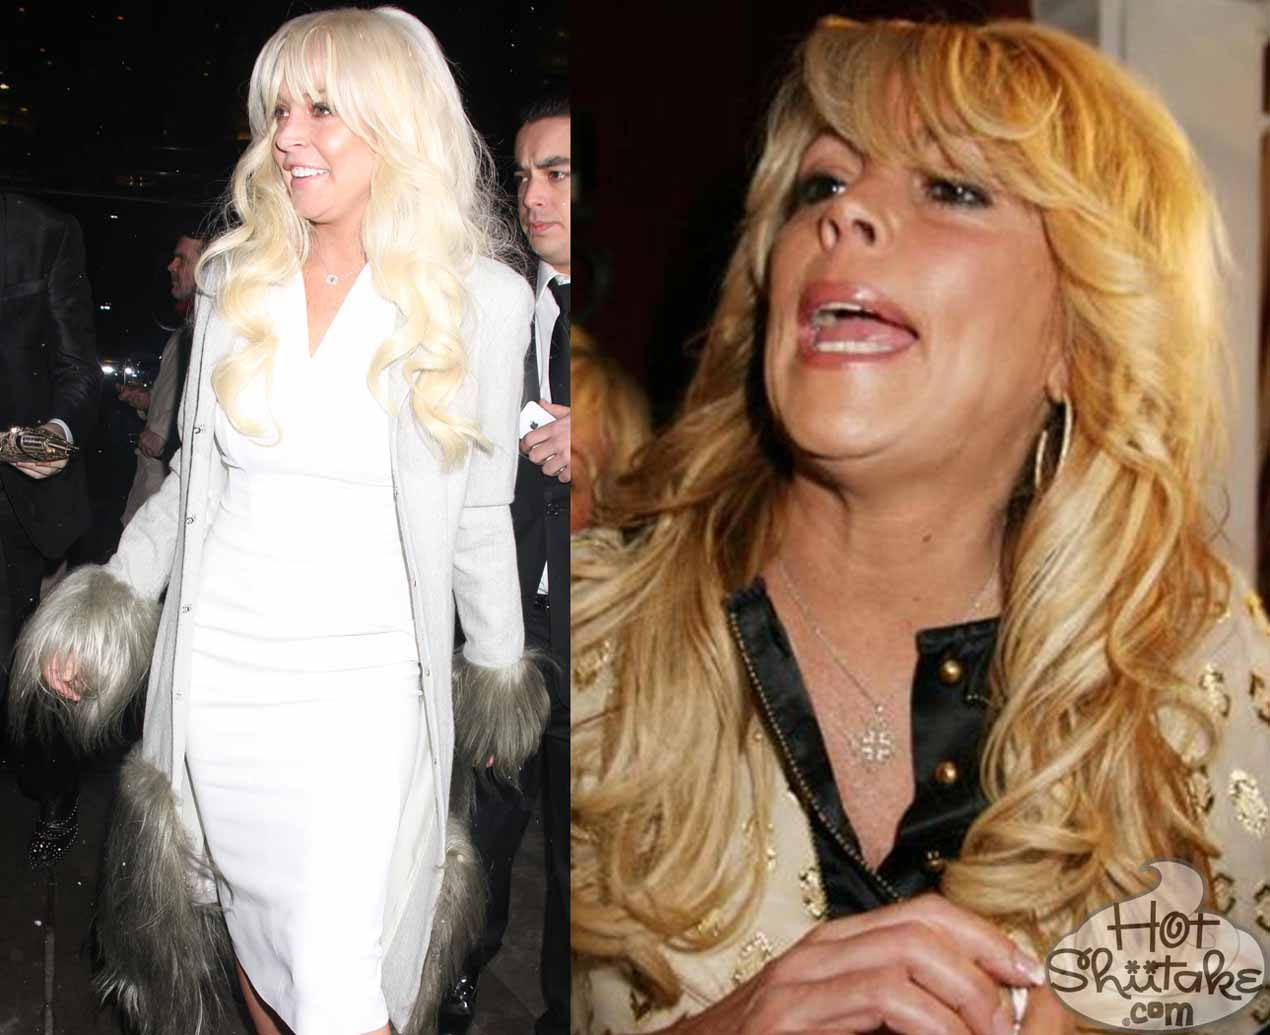 Lindsay Lohan and Dina Lohan twins